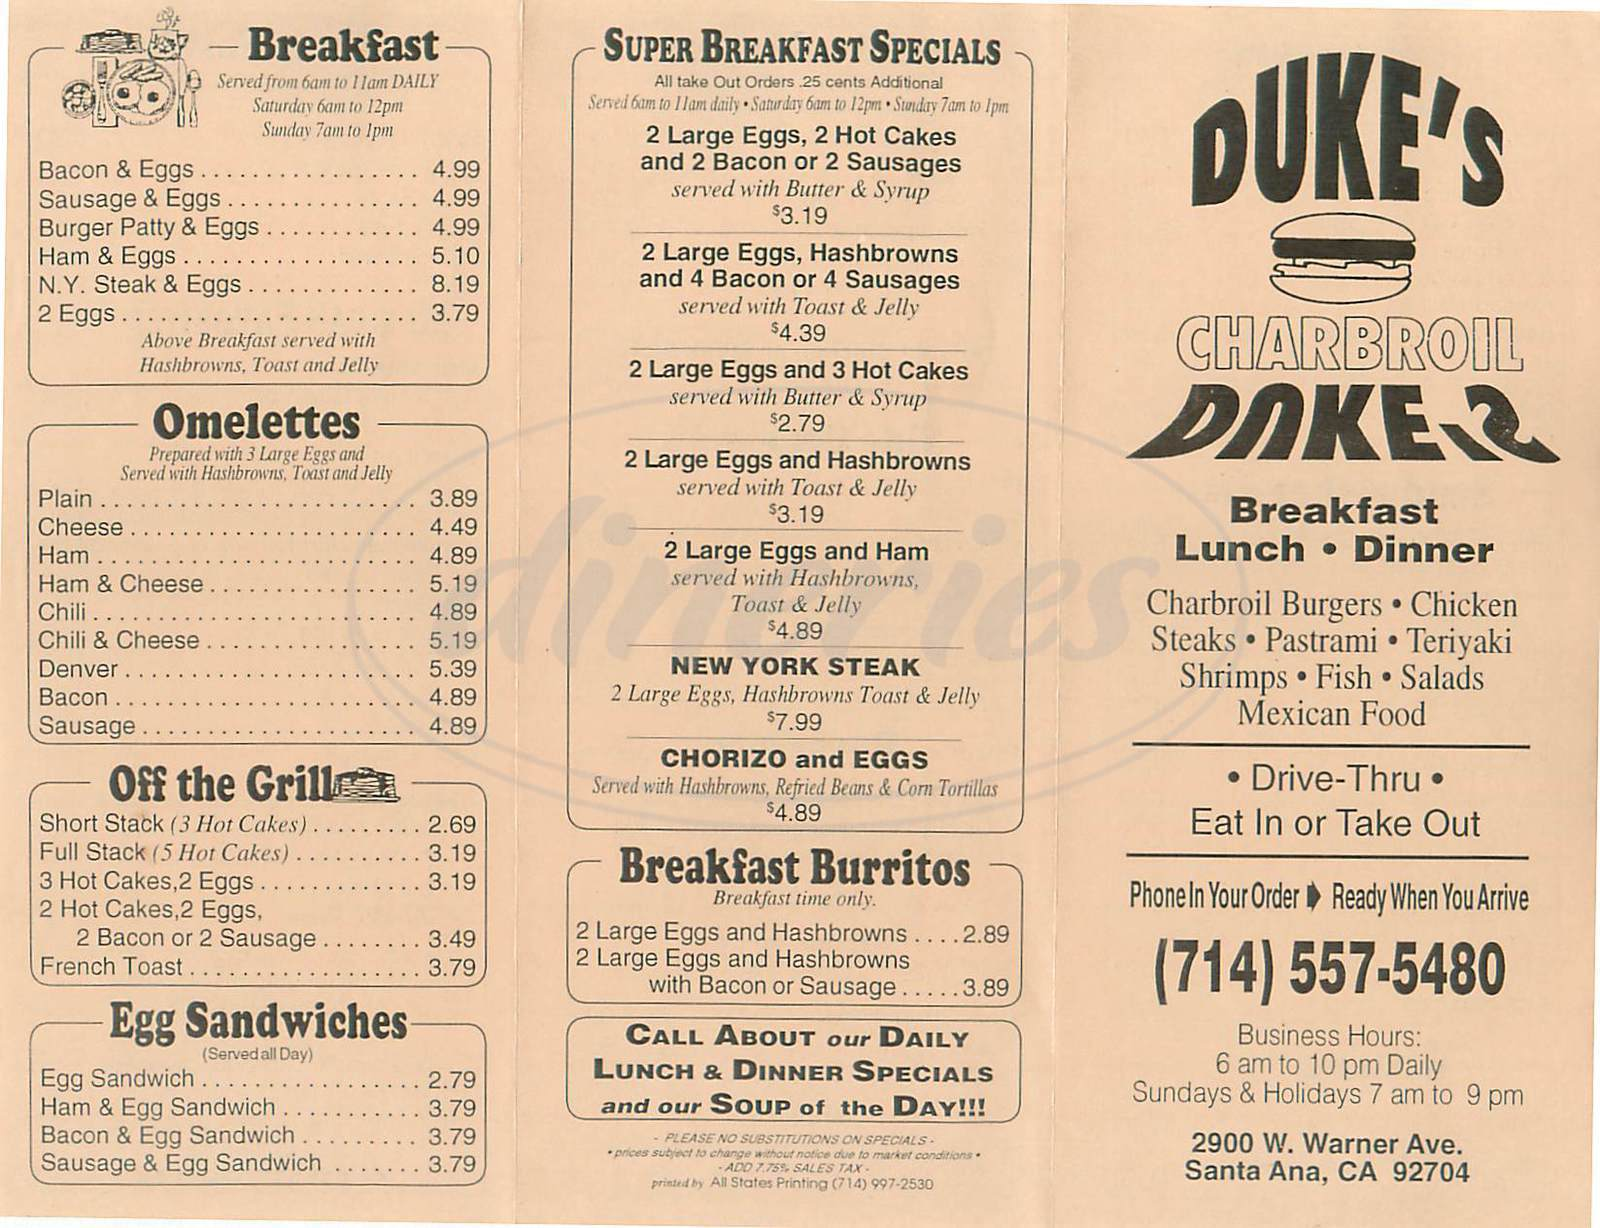 menu for Dukes Charbroile